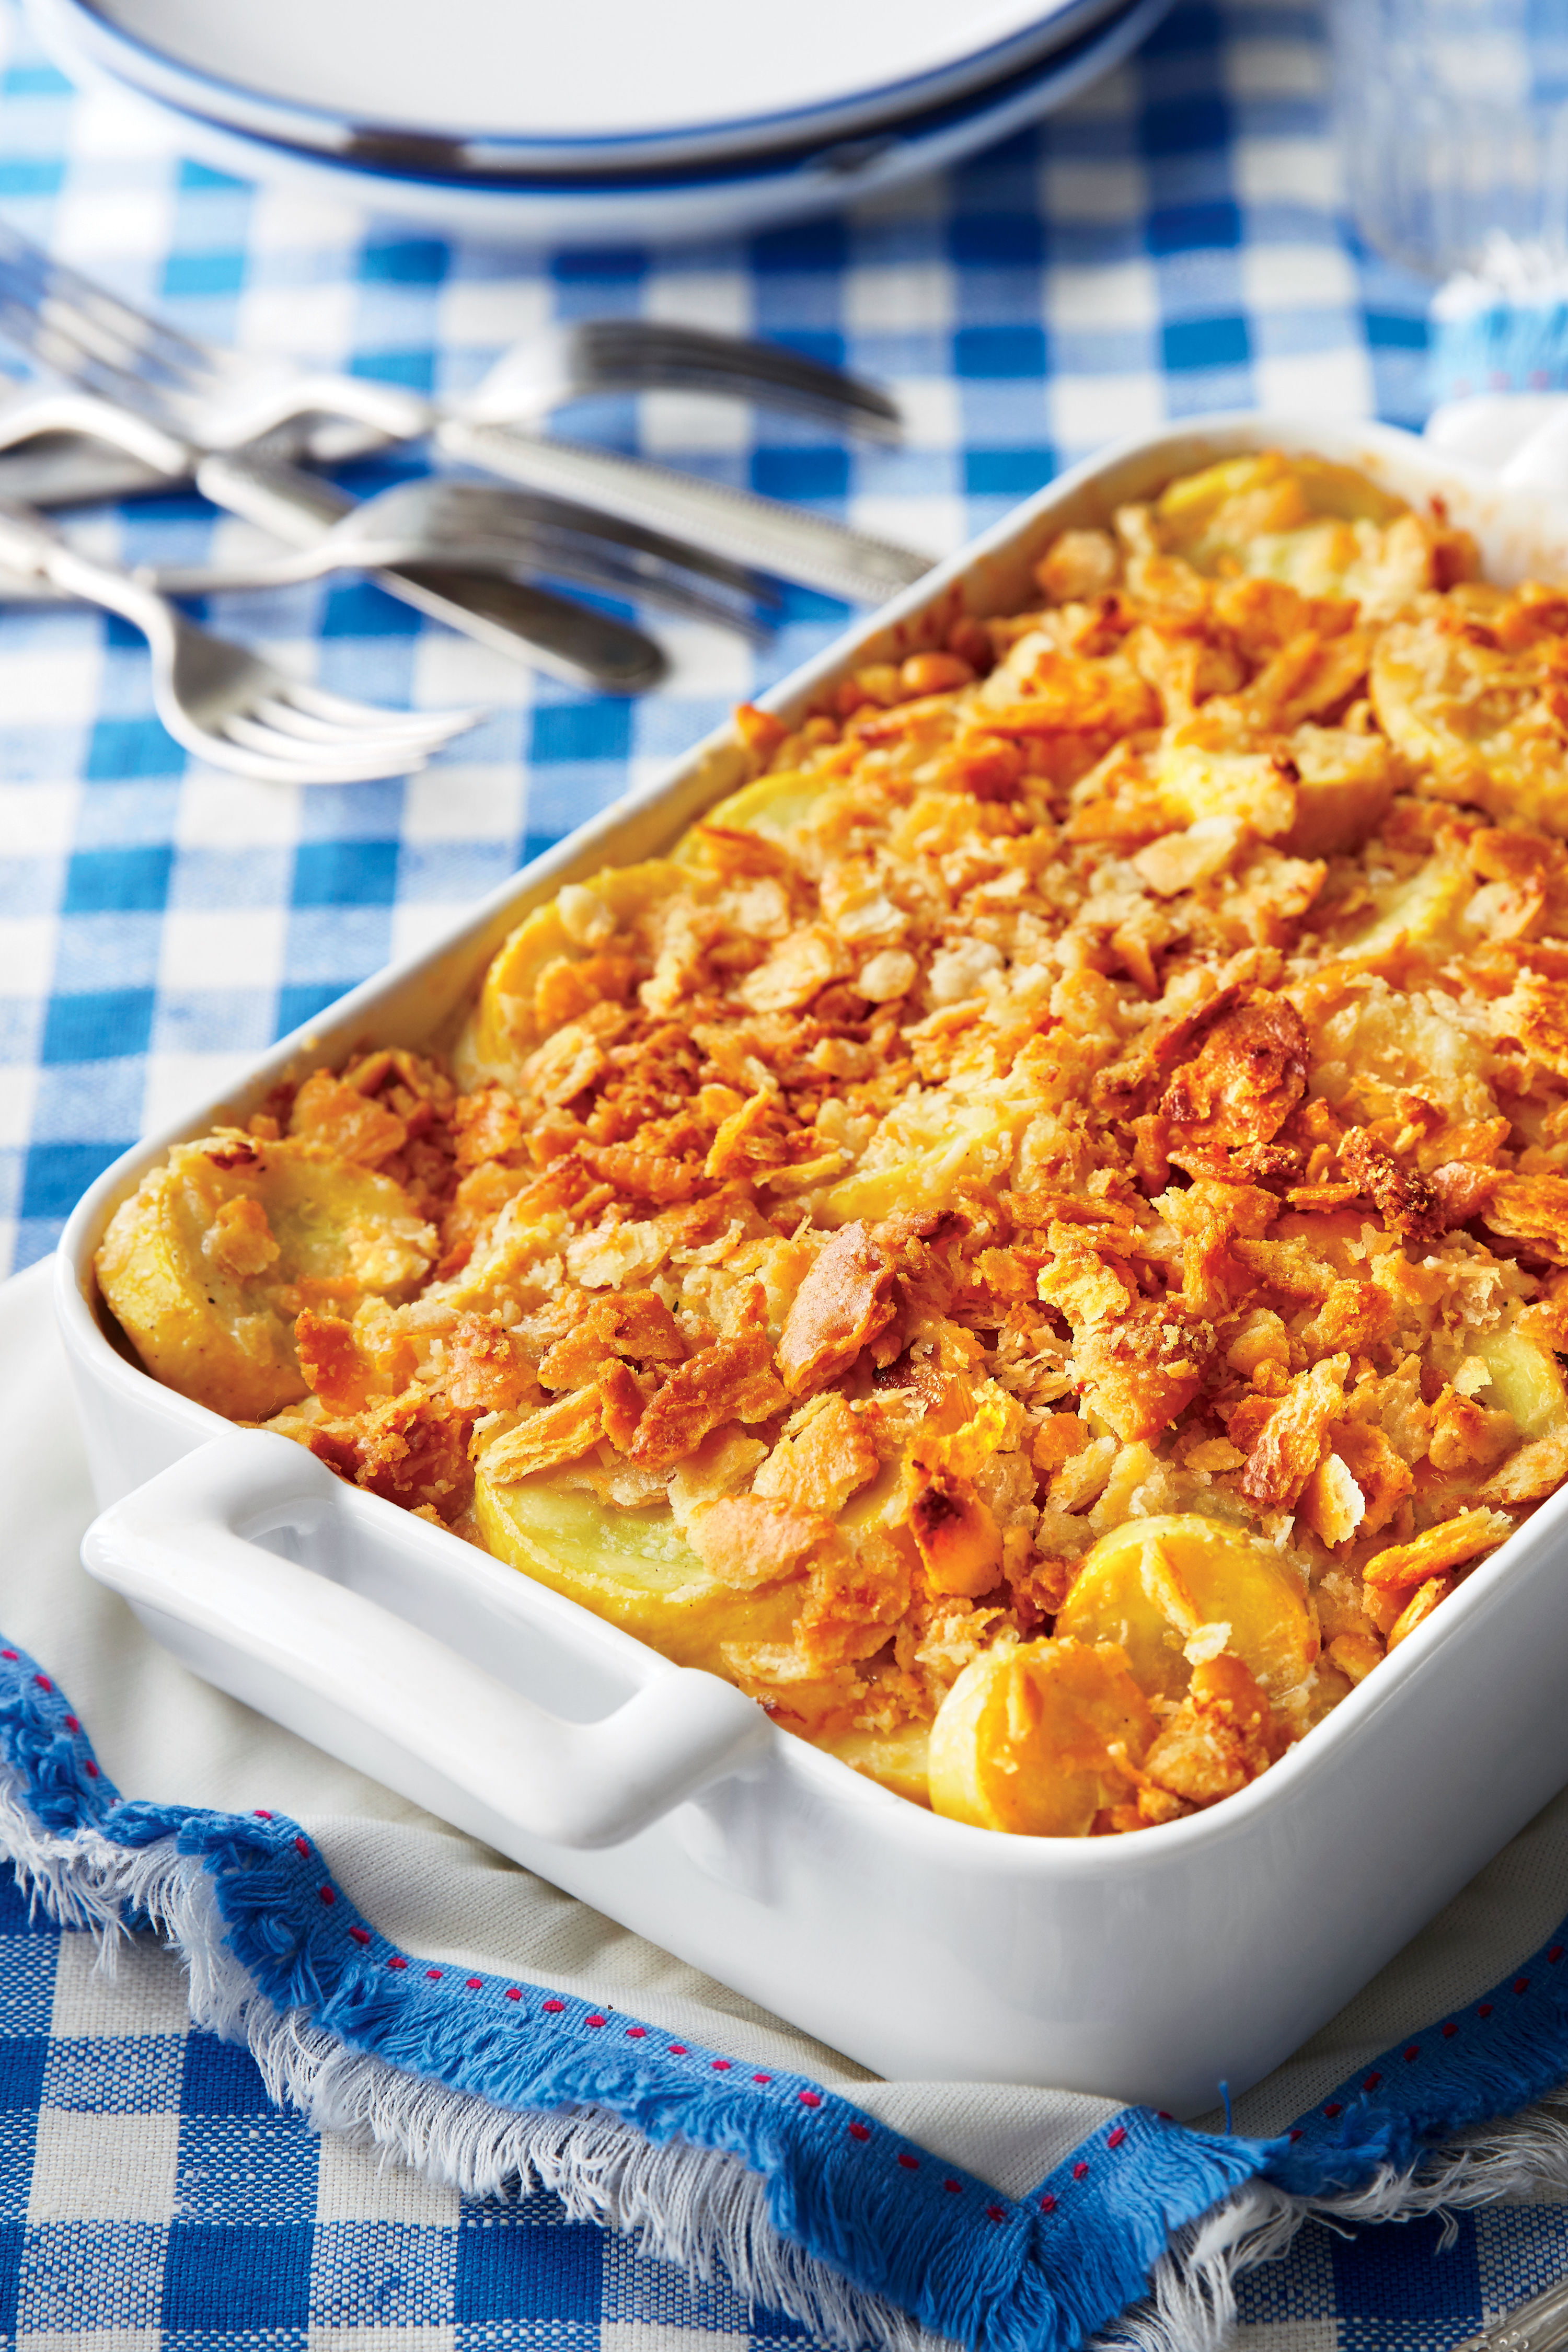 The Best Squash Casserole Story You'll Hear All Day